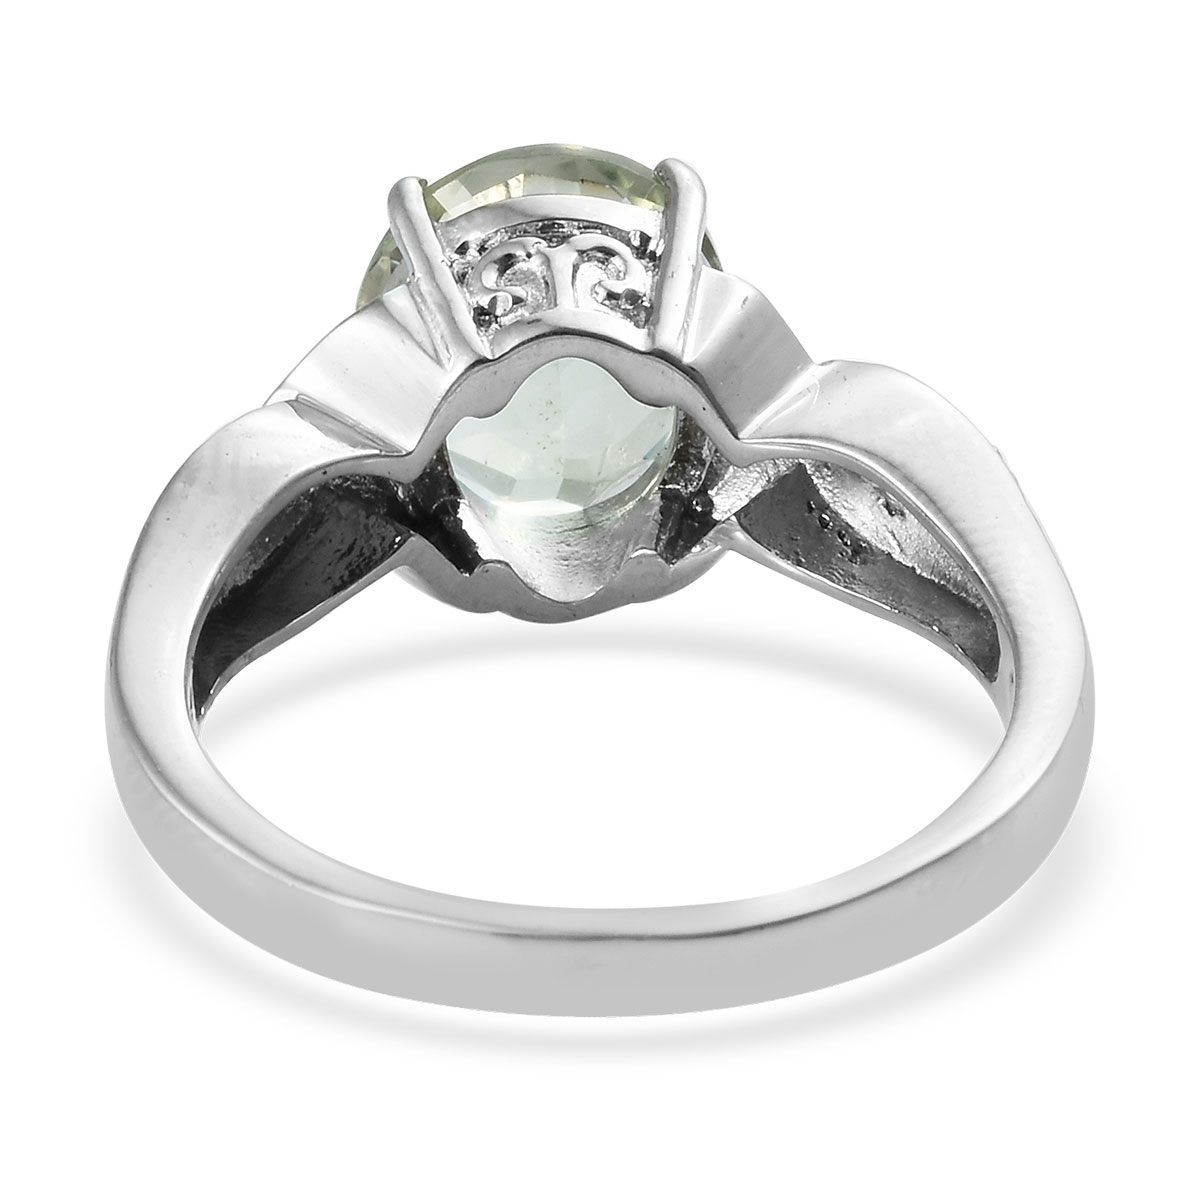 Green Amethyst Ring in Stainless Steel (Size 10.0) 4.20 ctw